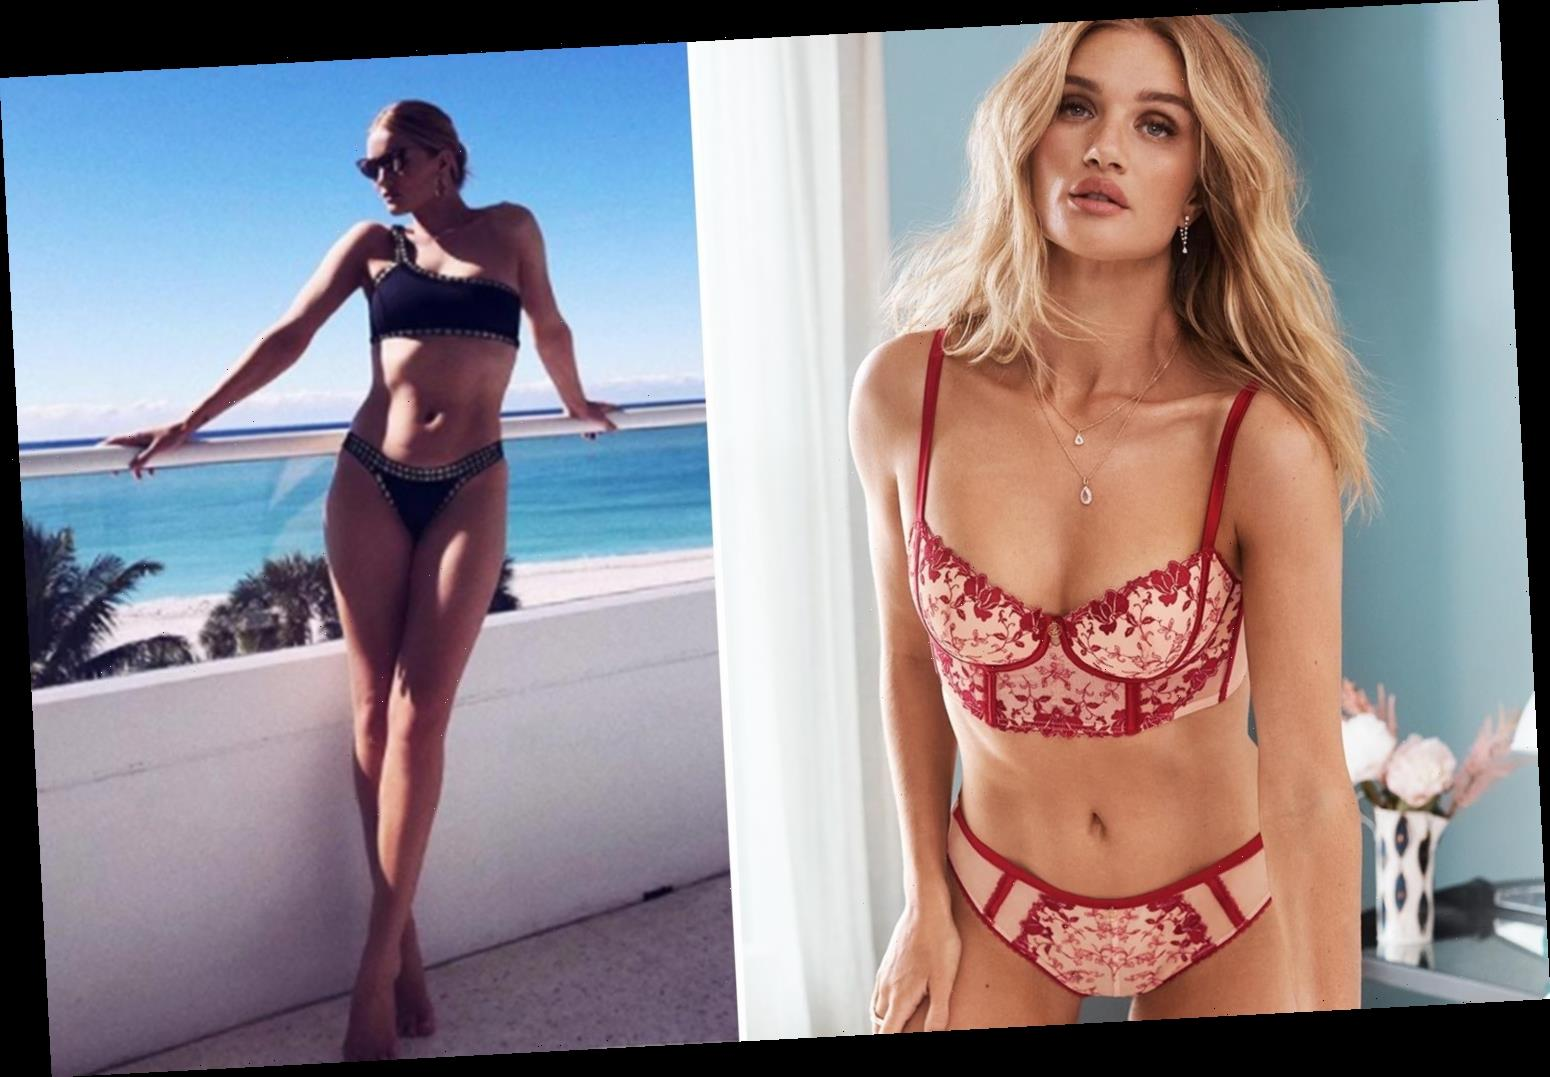 Rosie Huntington-Whiteley hasn't lost her Spark as she shows off some of her lingerie for M&S – The Sun